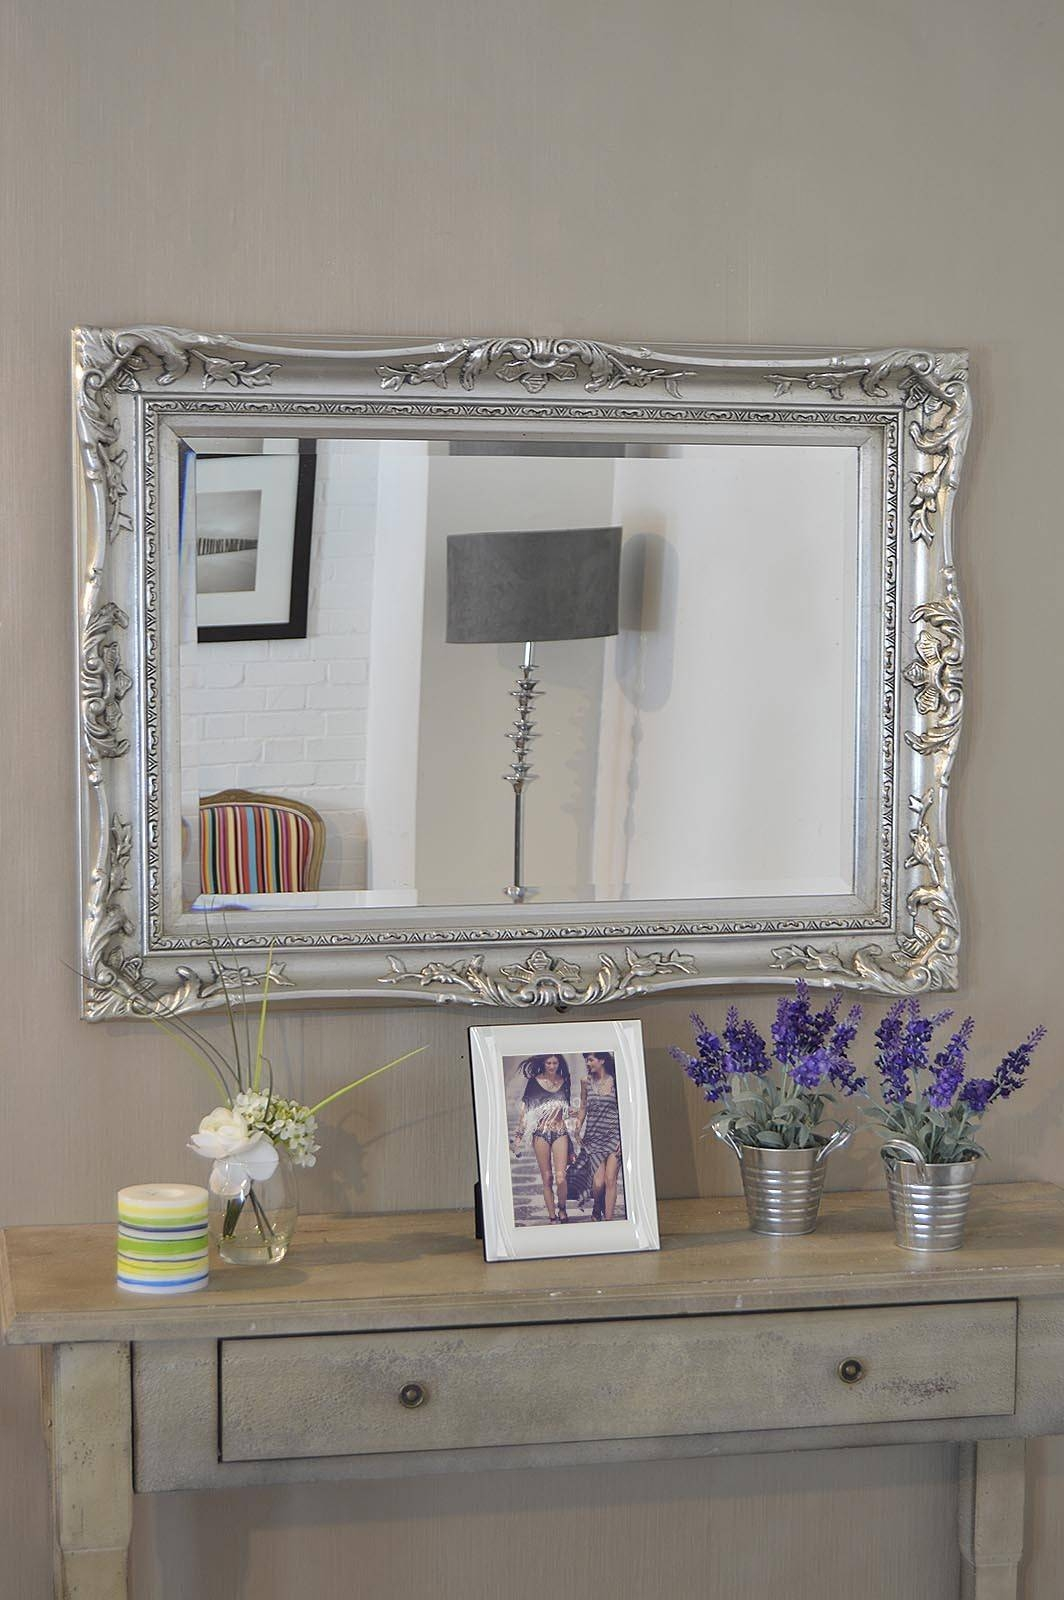 Large Antique Wall Mirror Ornate Frame Antique Ornate Wall Mirrors within Antique Ornate Mirrors (Image 15 of 25)